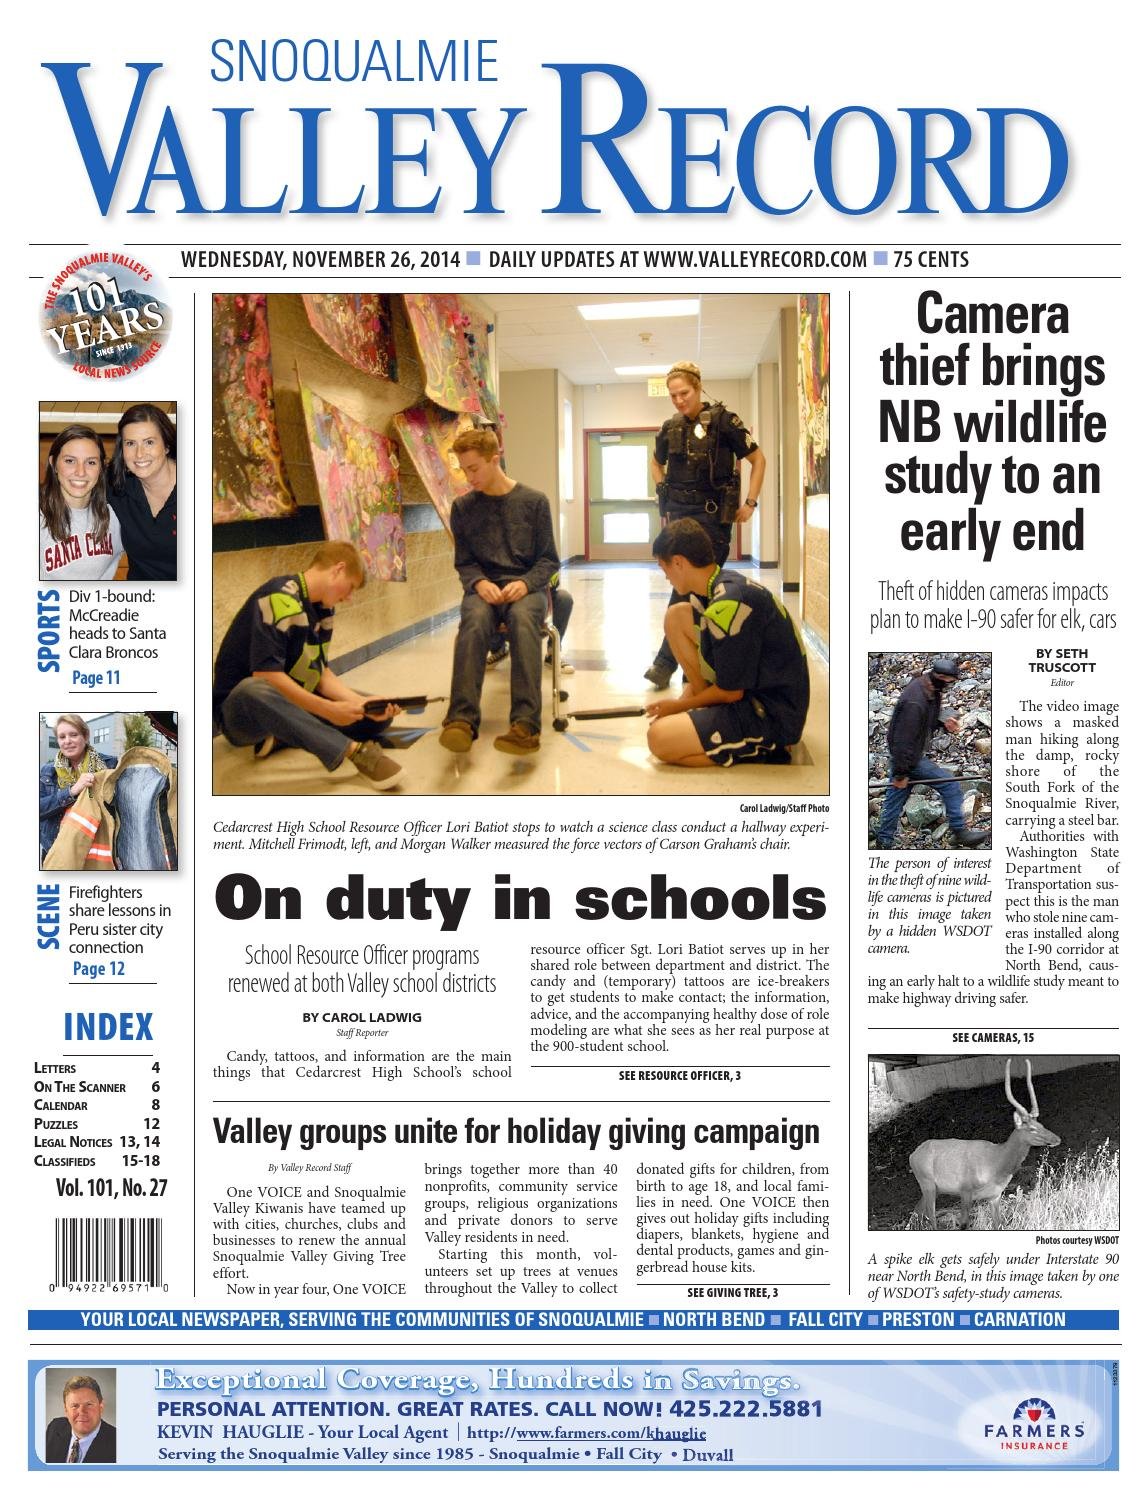 Snoqualmie Valley Record, November 26, 2014 by Sound